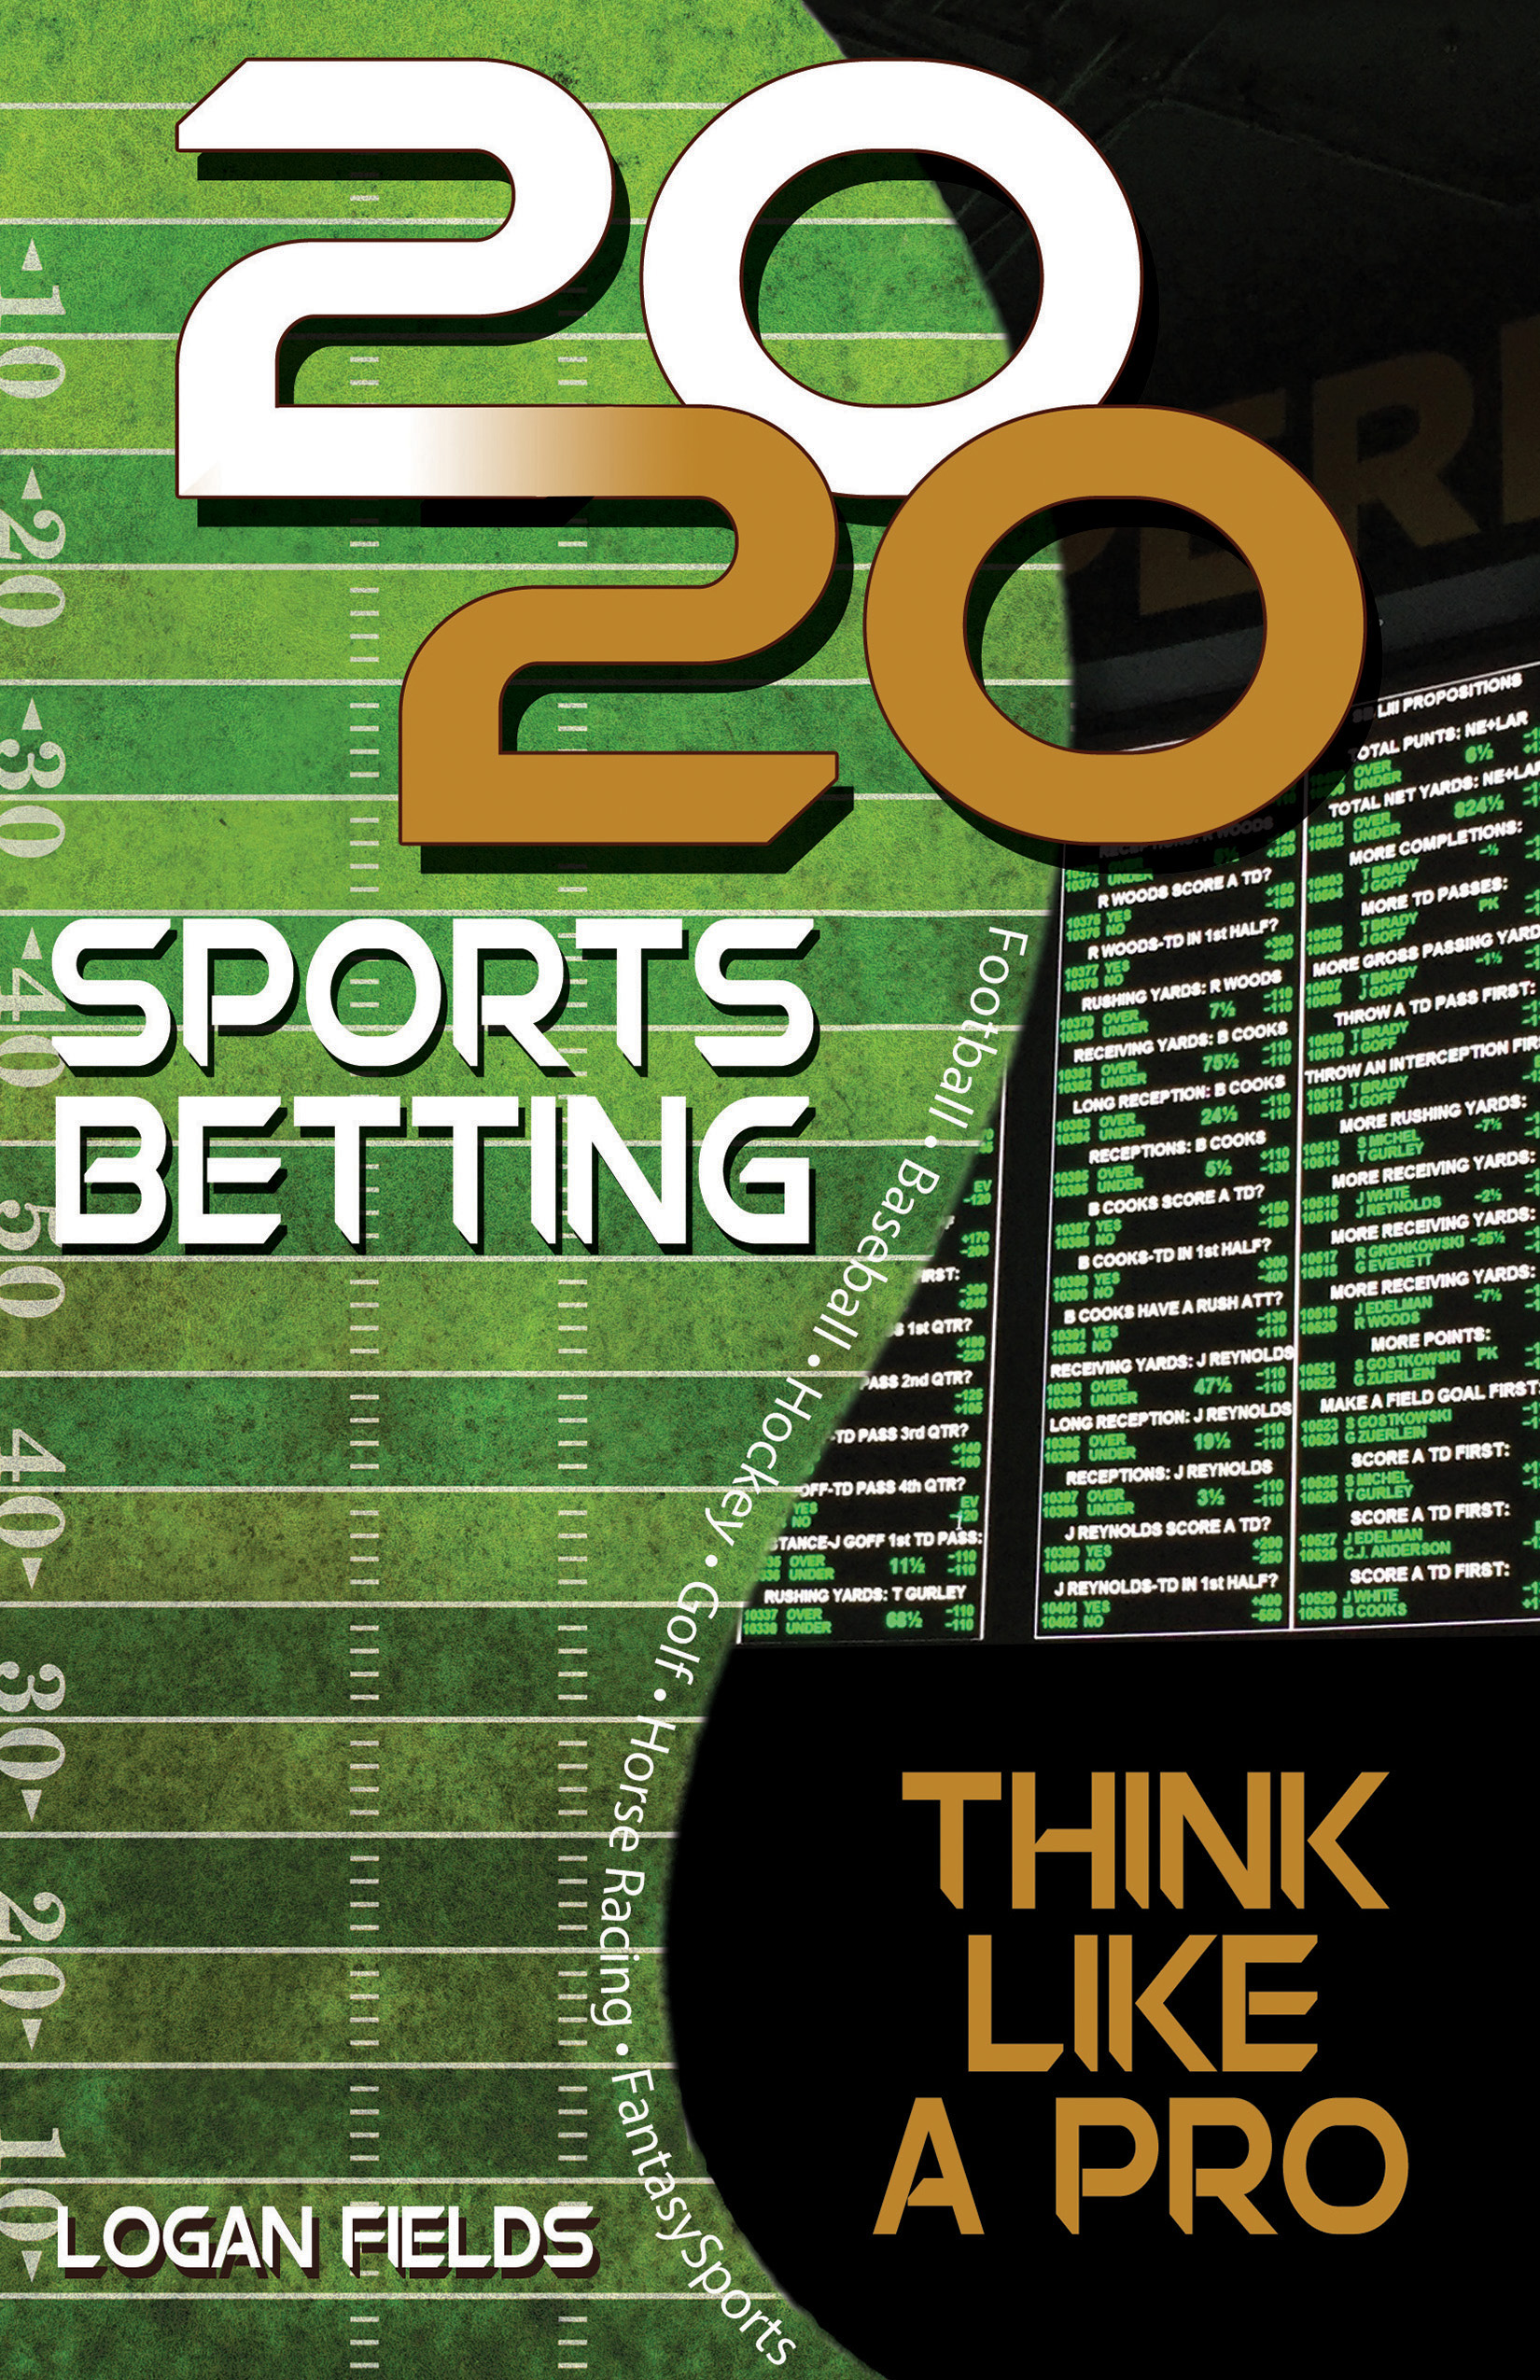 Premier sports betting rules in las vegas aston villa v west brom betting tips